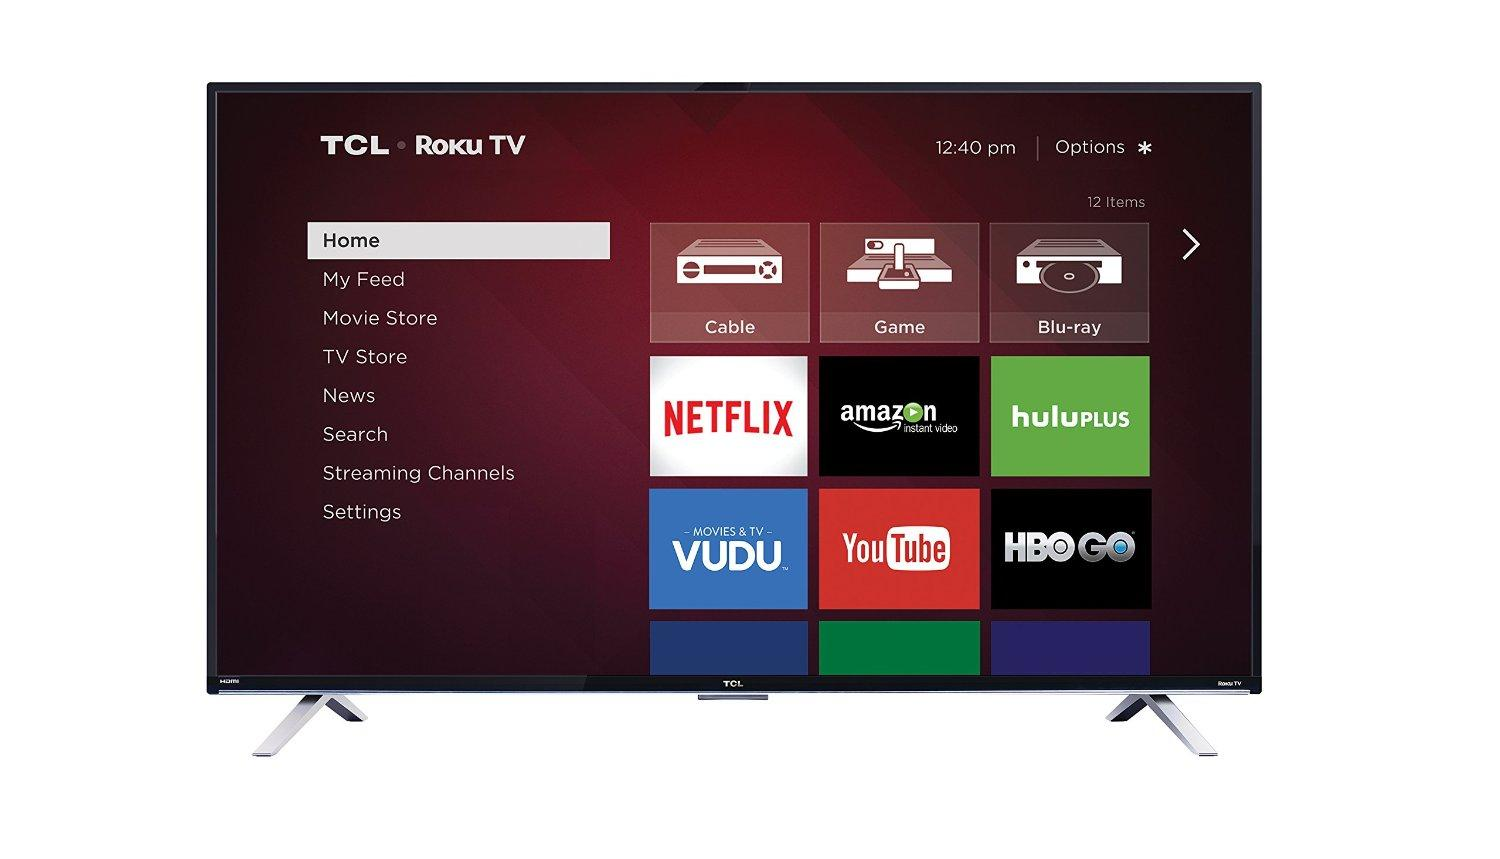 TCL 55FS3850 55-Inch 1080p Roku Smart LED TV (2015 Model)